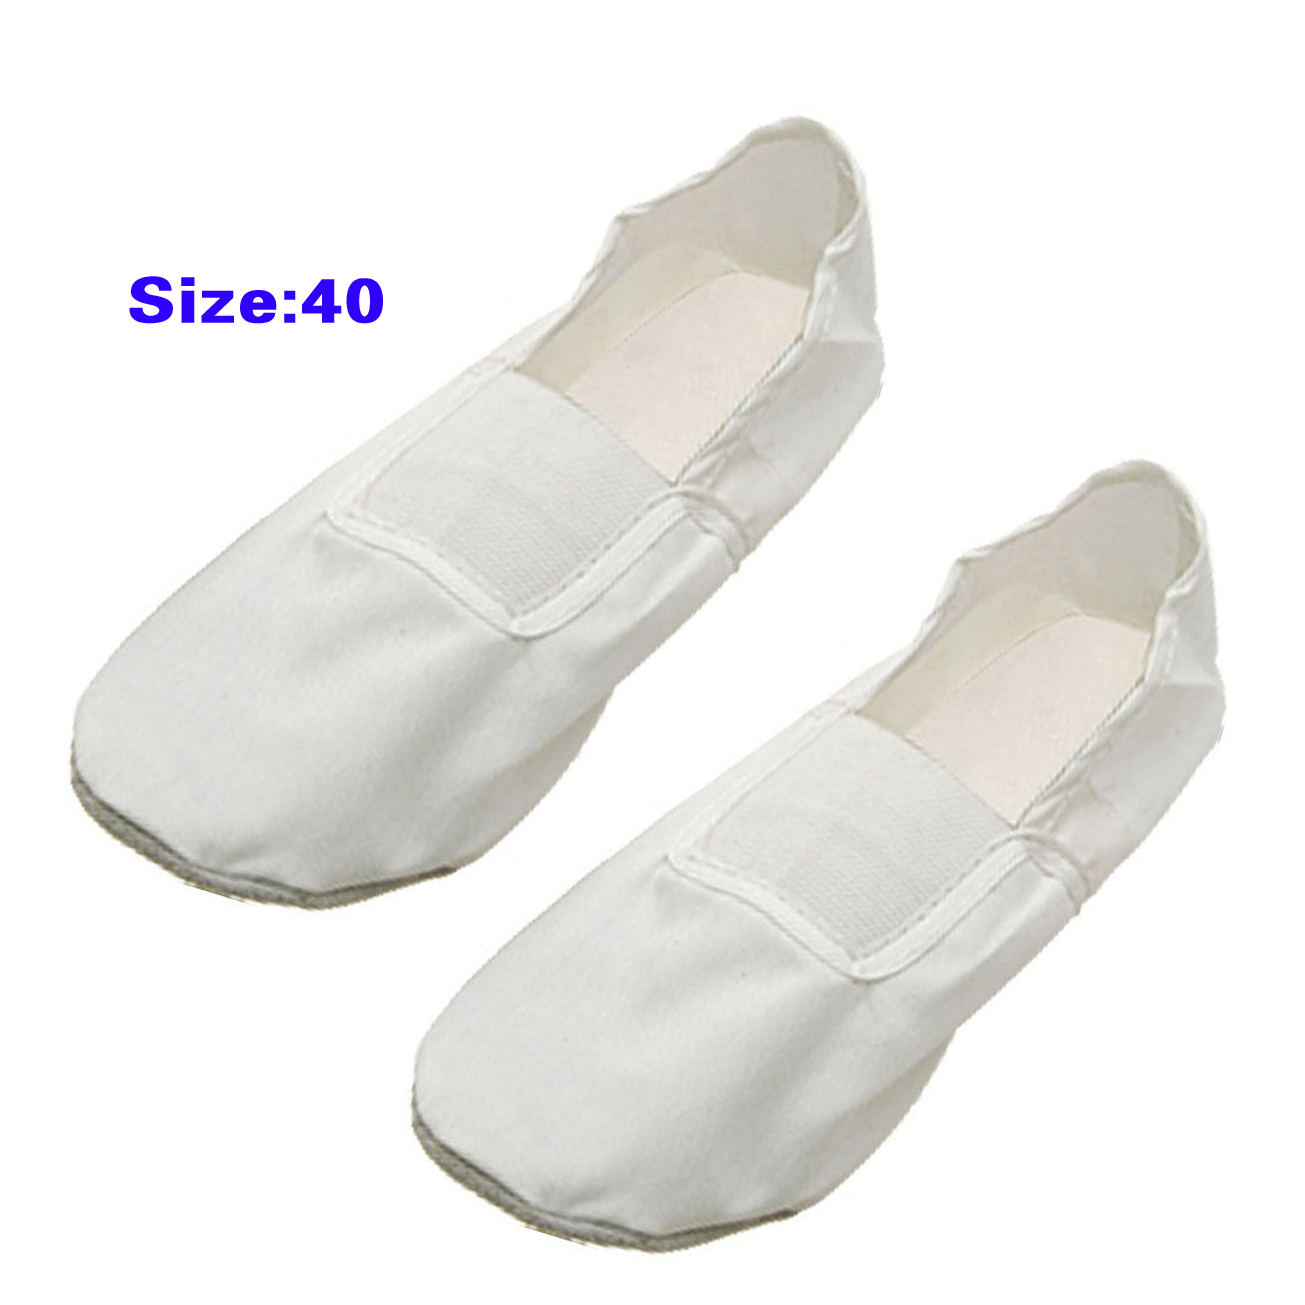 5 PCS White Dancer Dancing Ballet Shoes Slippers US Sz 9.5